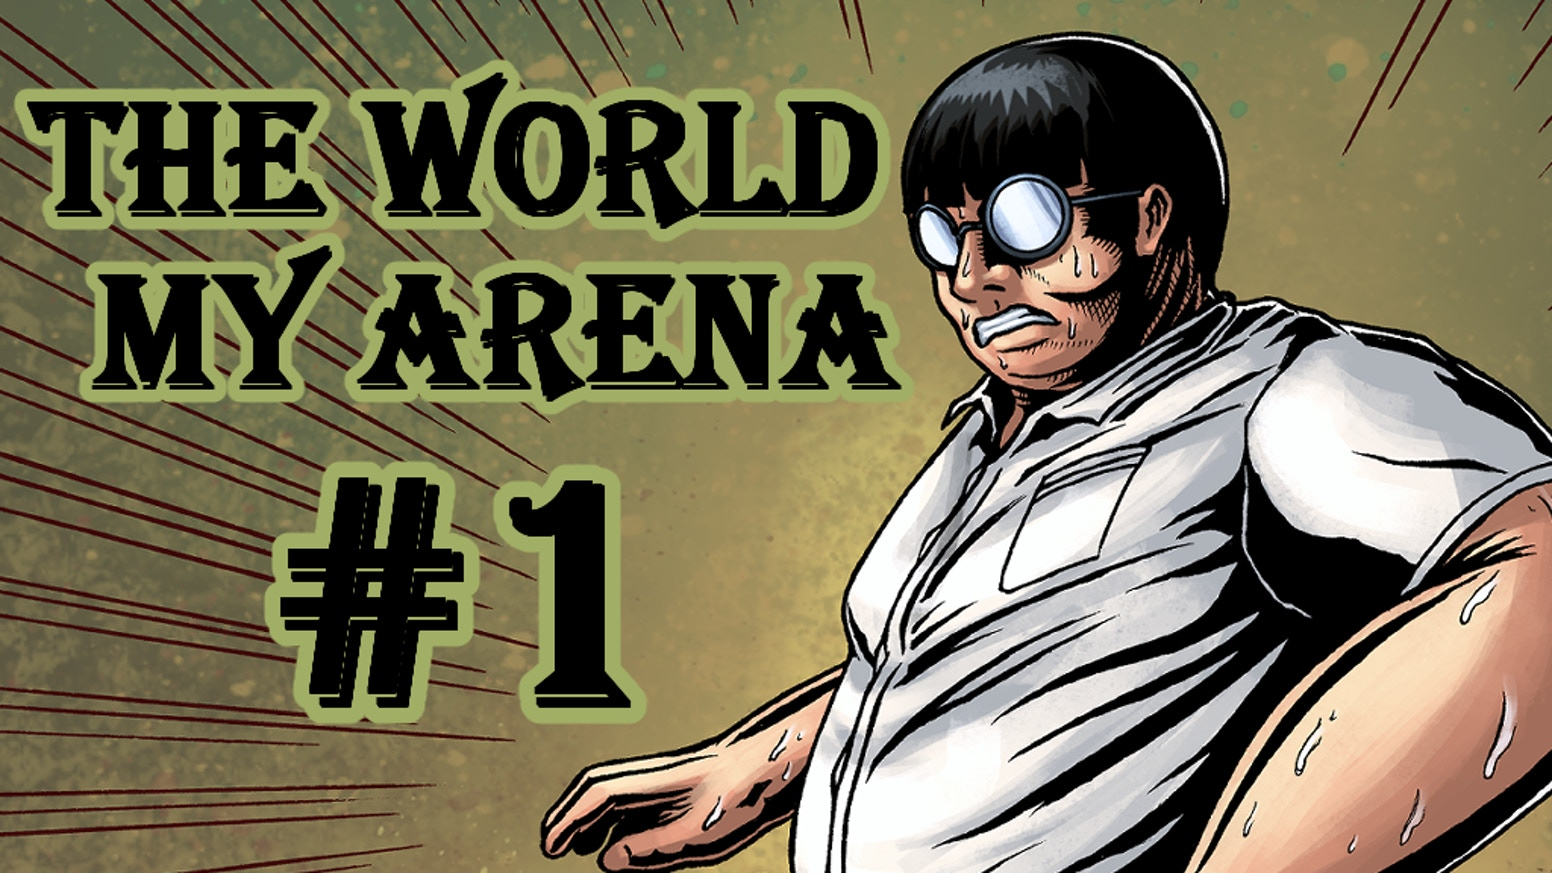 """Embark on a journey of self discovery through martial arts with the protagonist, Nathan, in """"THE WORLD, MY ARENA'."""